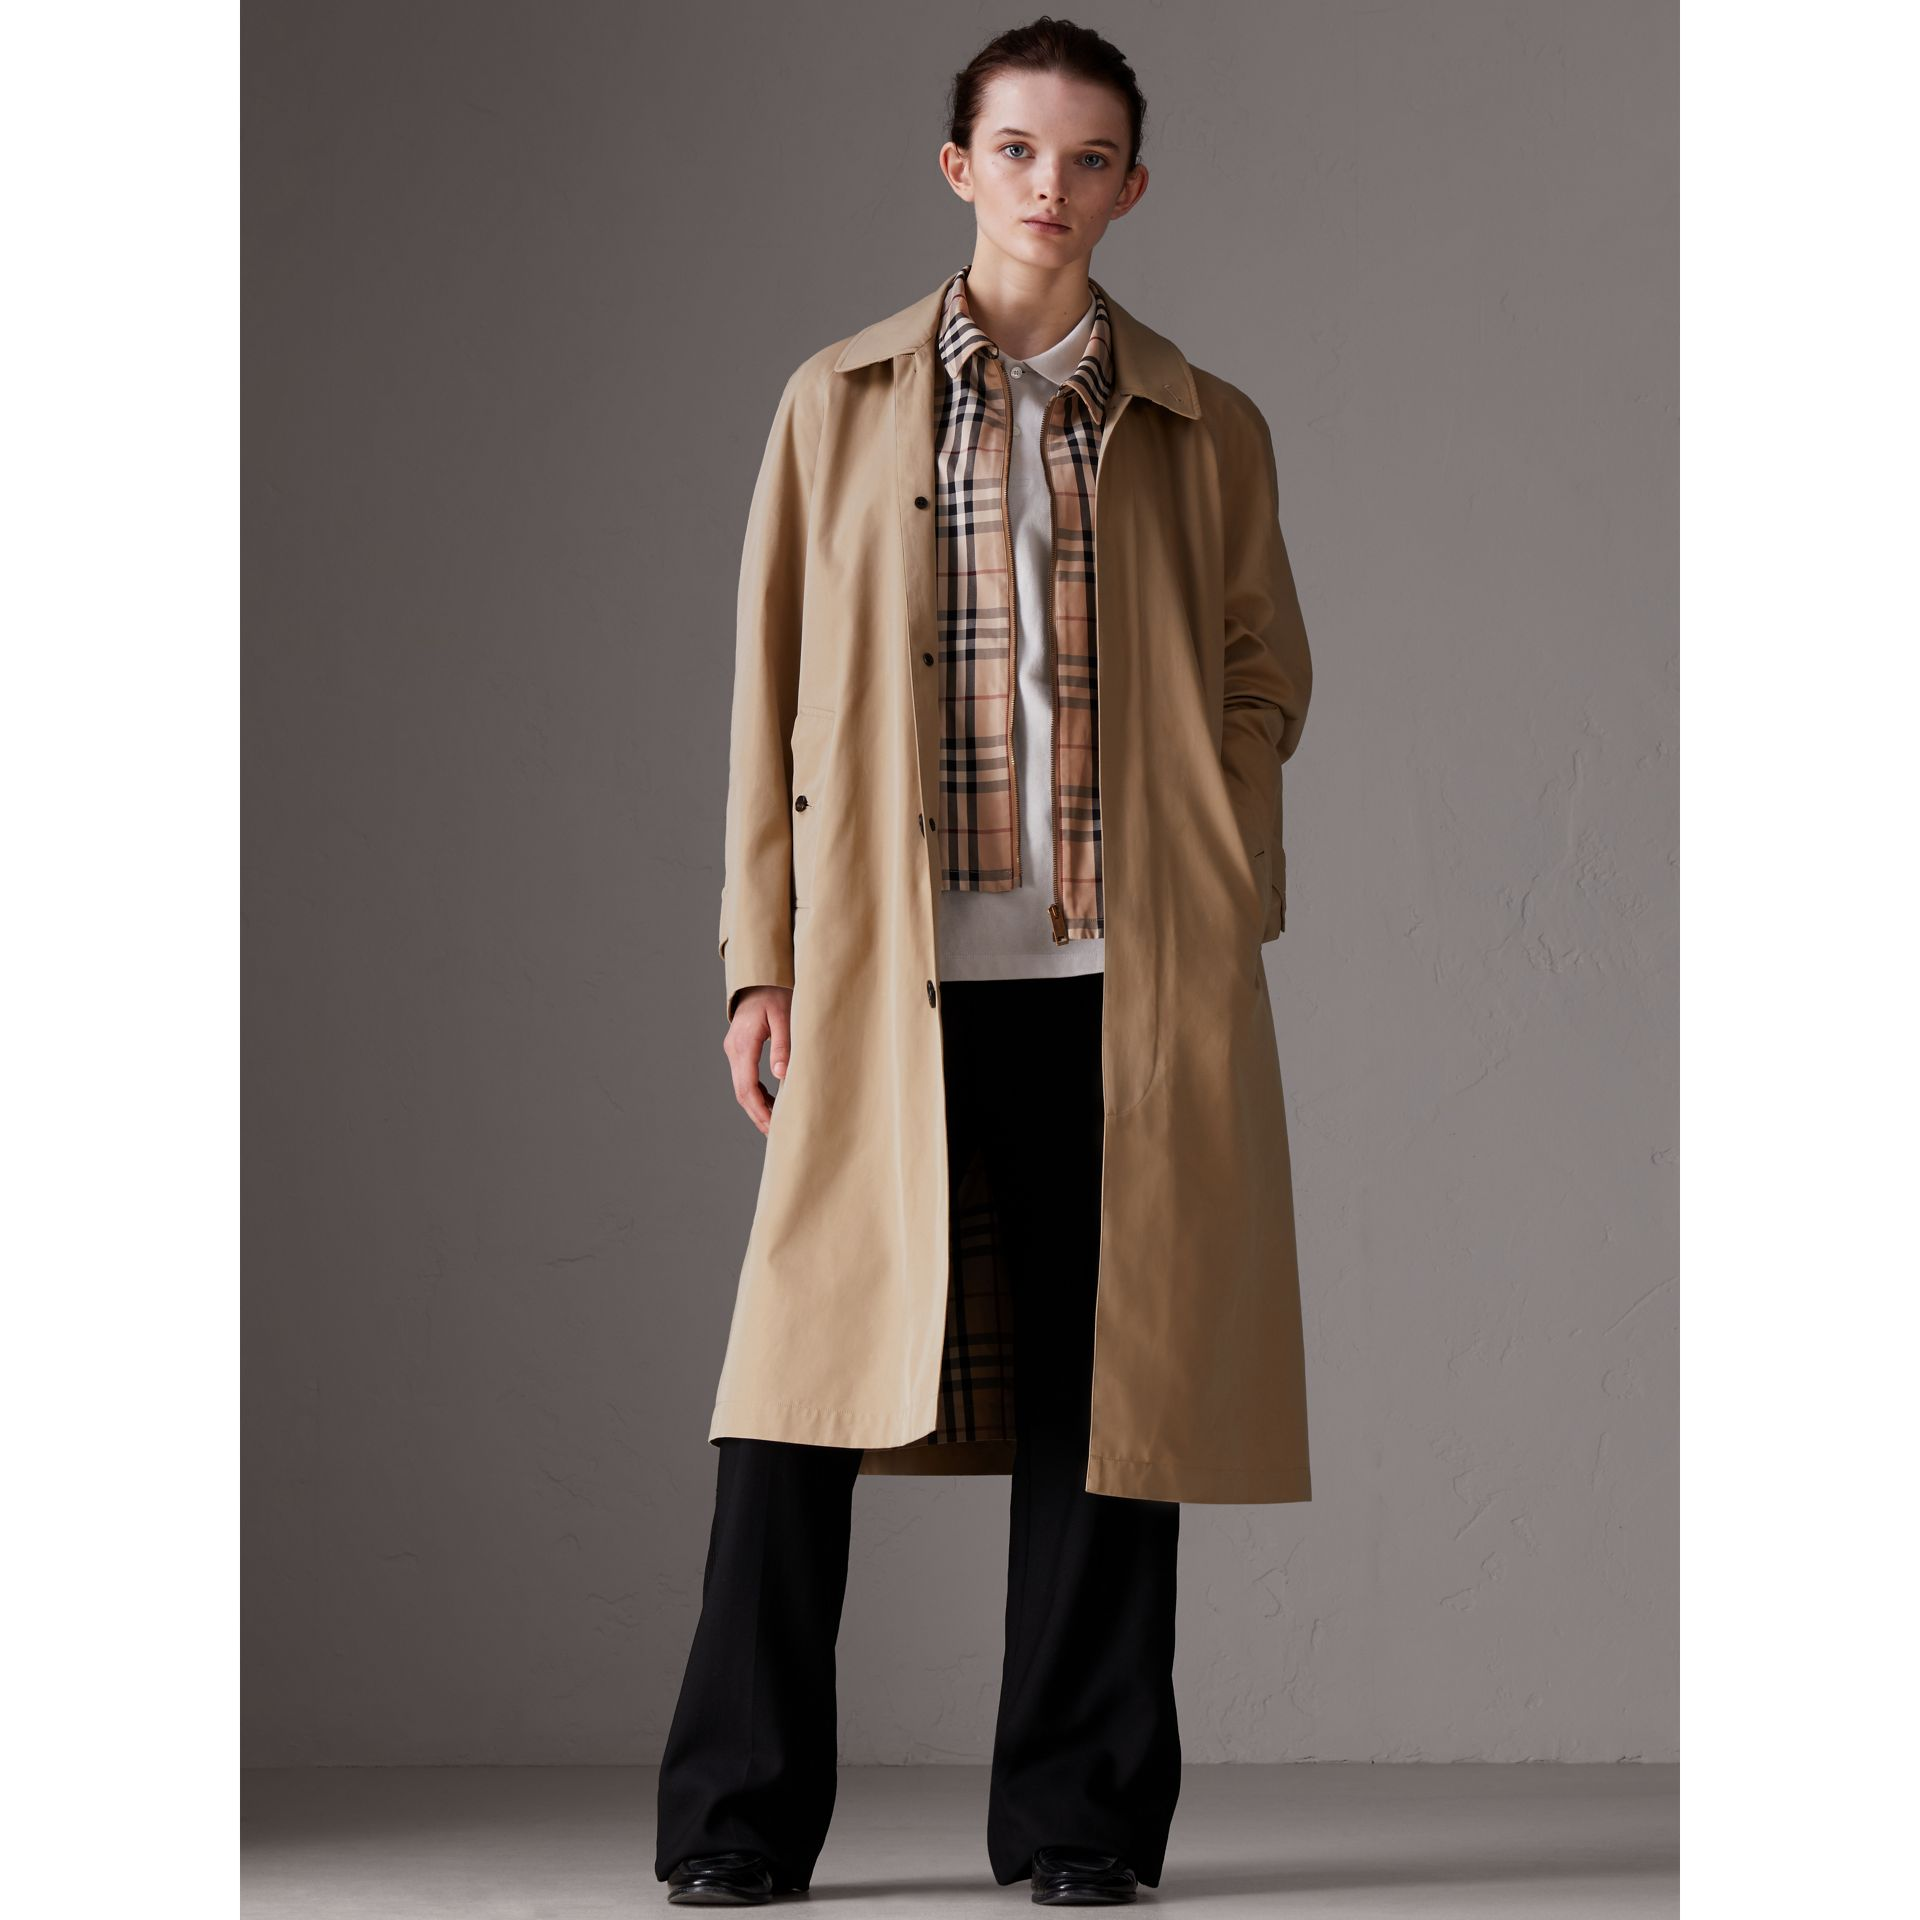 Gosha x Burberry Reconstructed Car Coat in Honey | Burberry Australia - gallery image 3